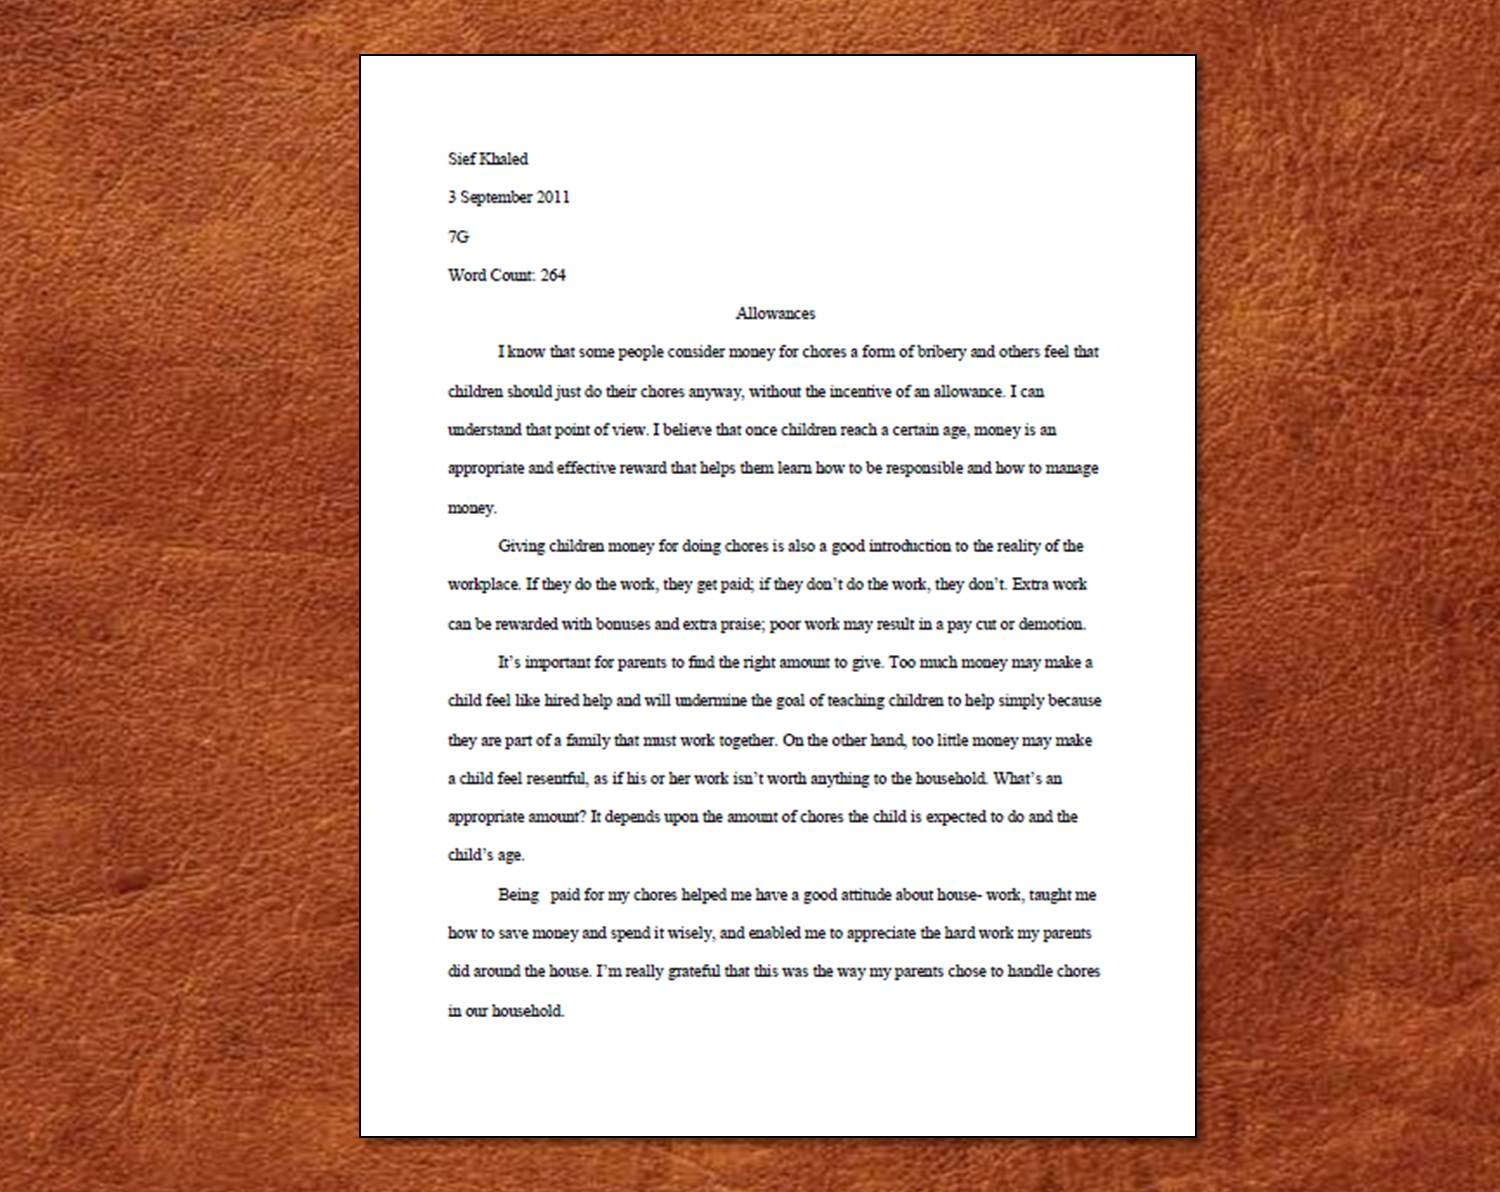 003 Picture1 Essay Example Proper Formidable Form Paper Format Reflection Full